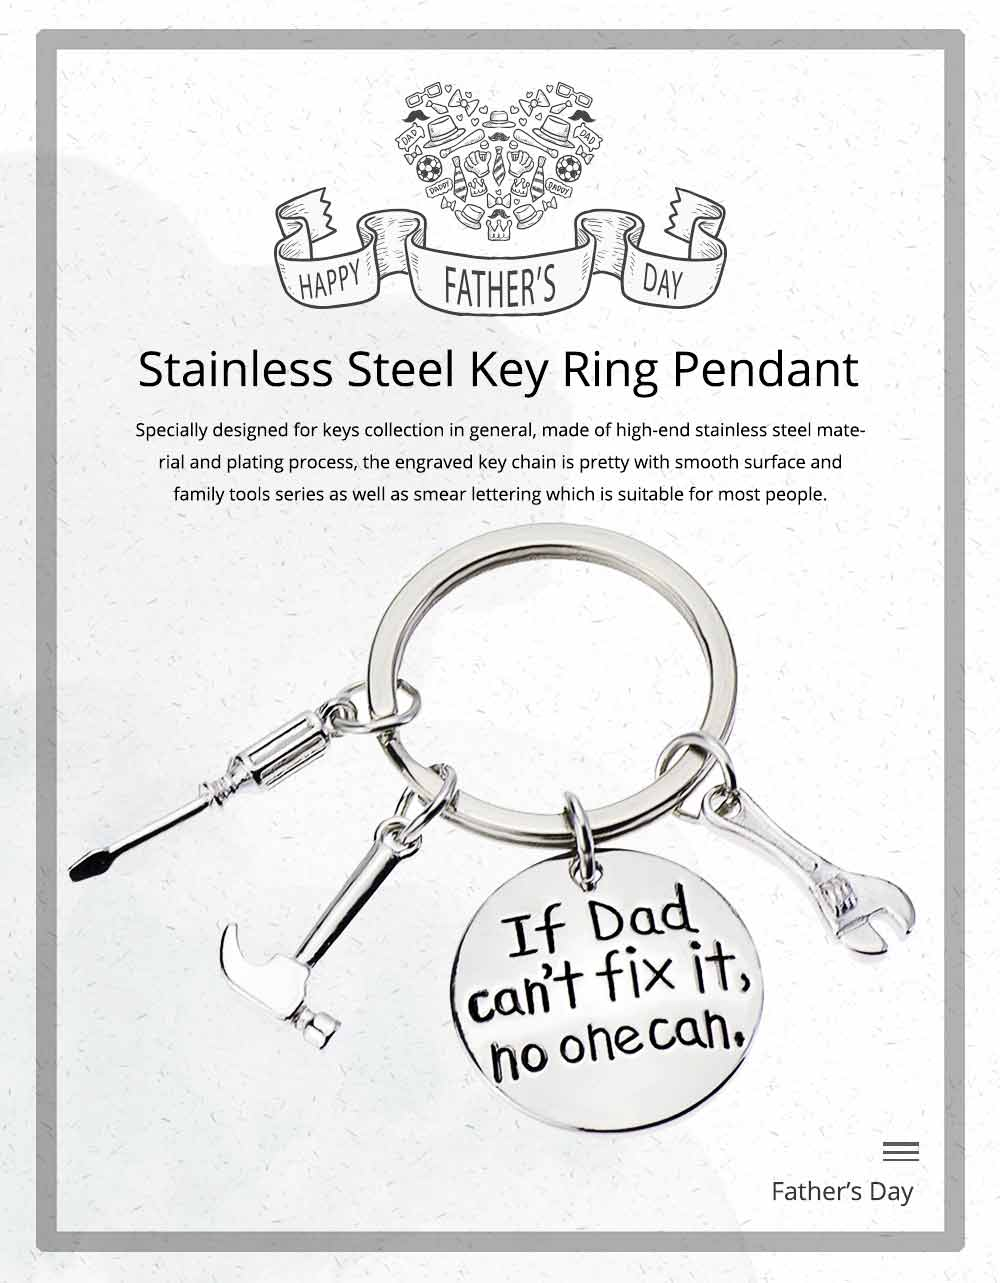 Stainless Steel Key Ring Pendant, Universal Engraved Key Chain with Smear Lettering 0